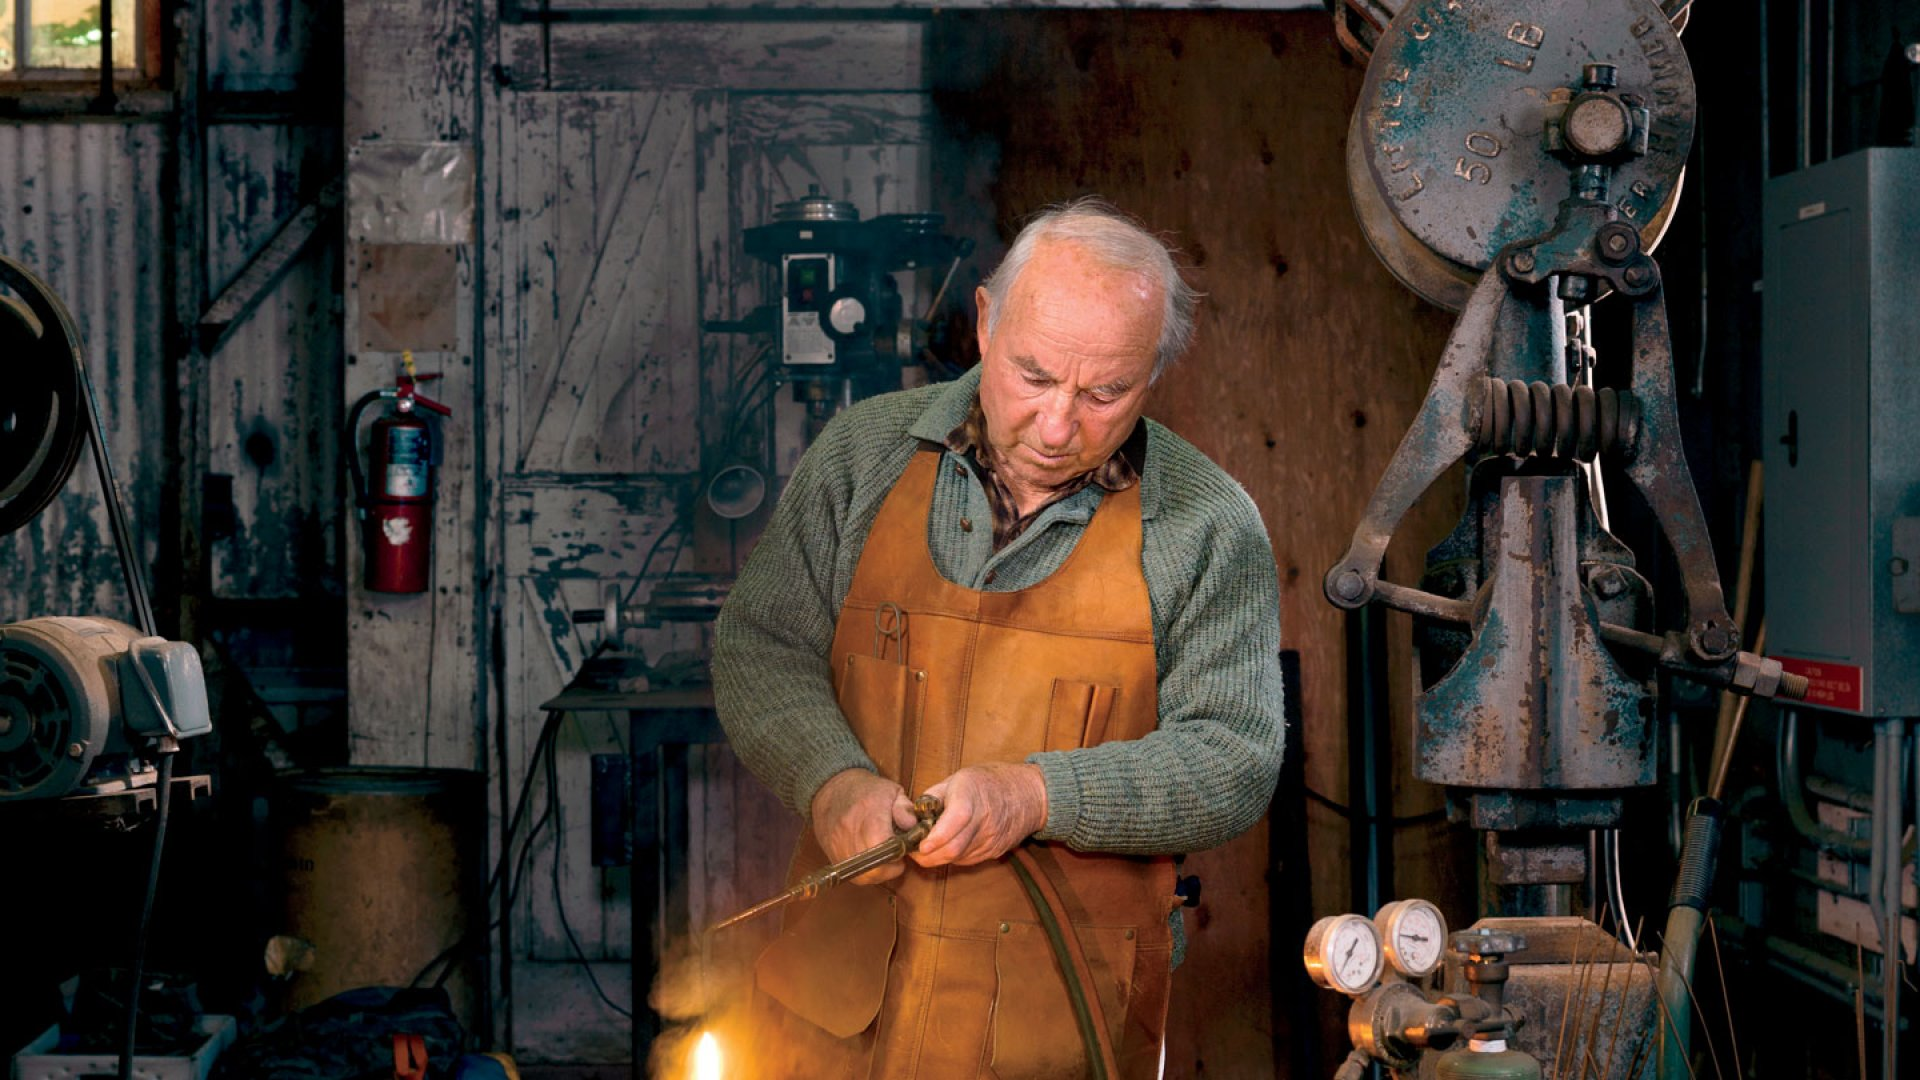 <b>Chief Tinkerer:</b> Here's where Yvon Chouinard's side projects come to life. His latest: an energy-efficient camping stove.